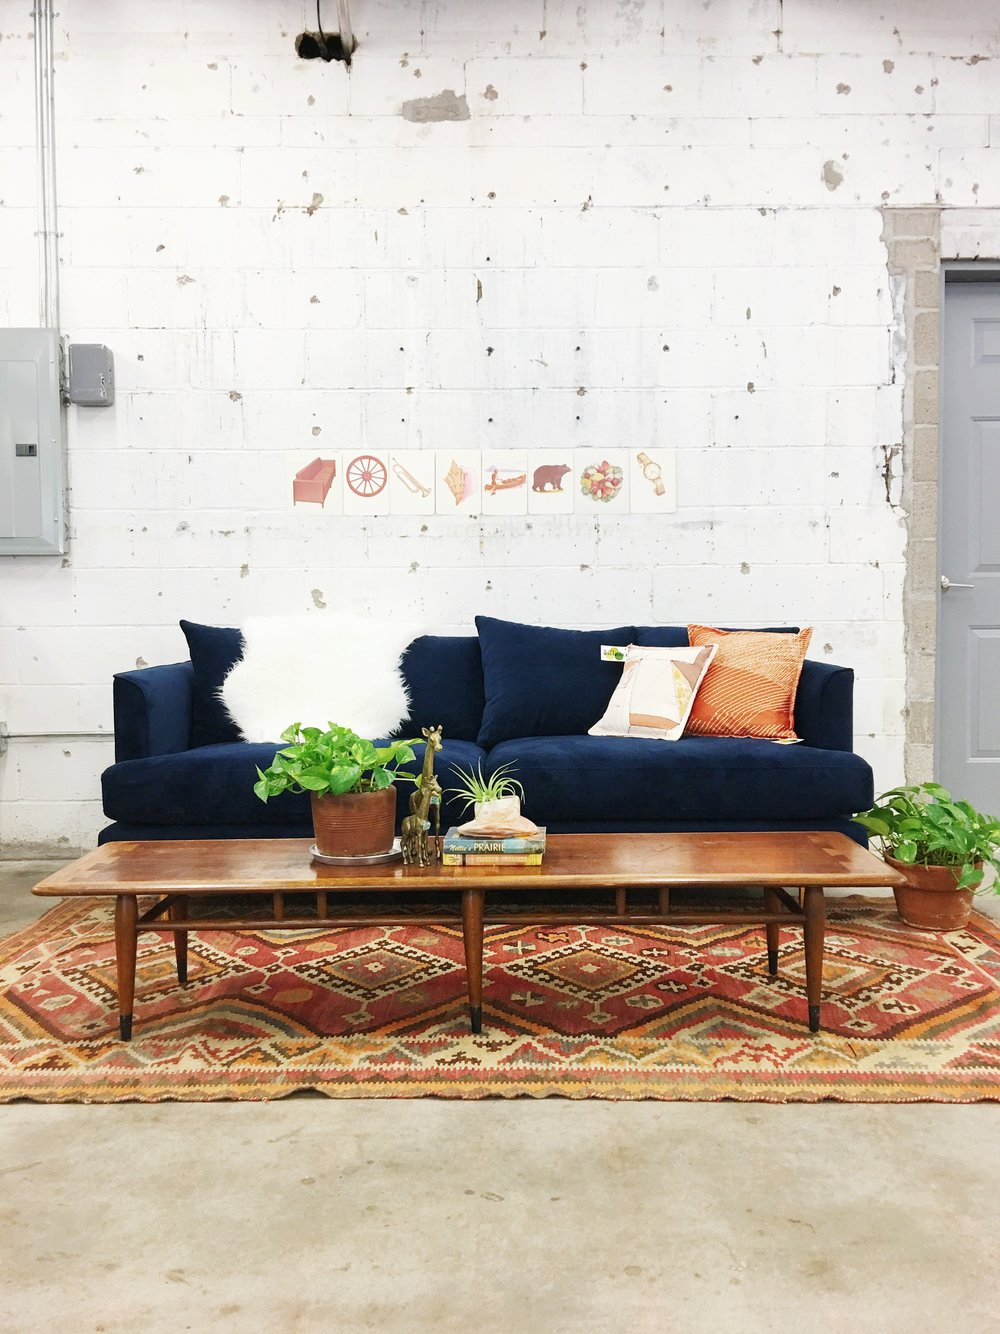 The Gus* Margot sofa is available to order through our shop in several fabric options.